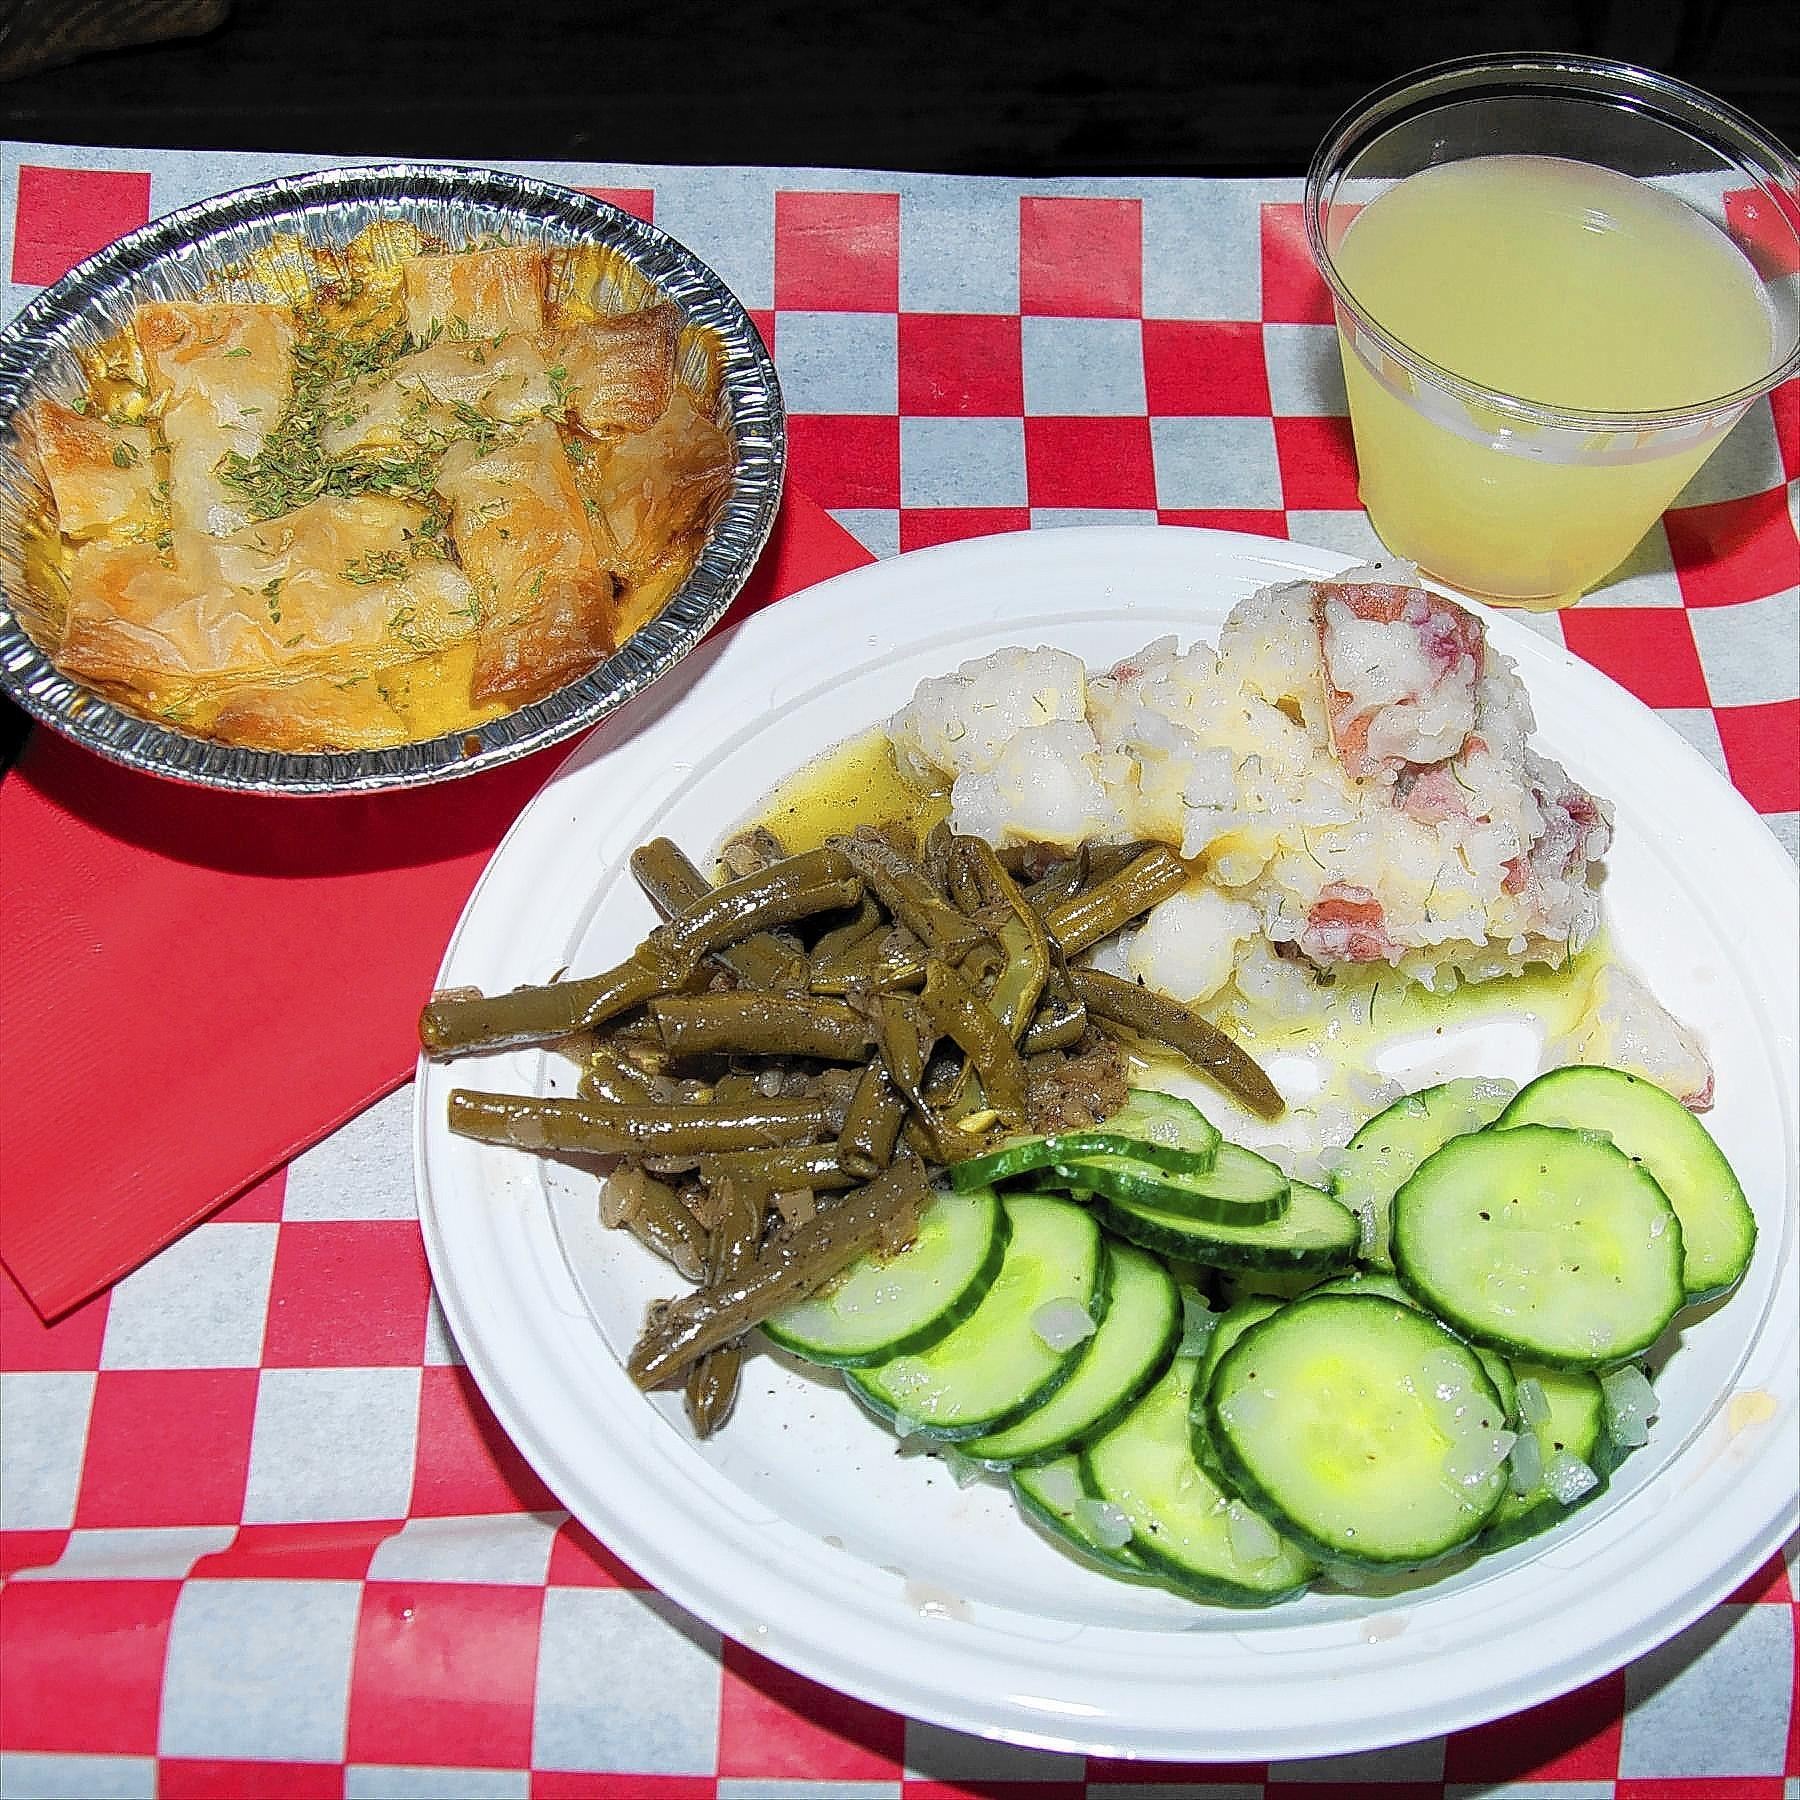 Chicken Pot Pie and German Cucumber Salad and Potato Salad, with Green Beans and lemonade, were served onboard the Josiah White II canal boat cruise.